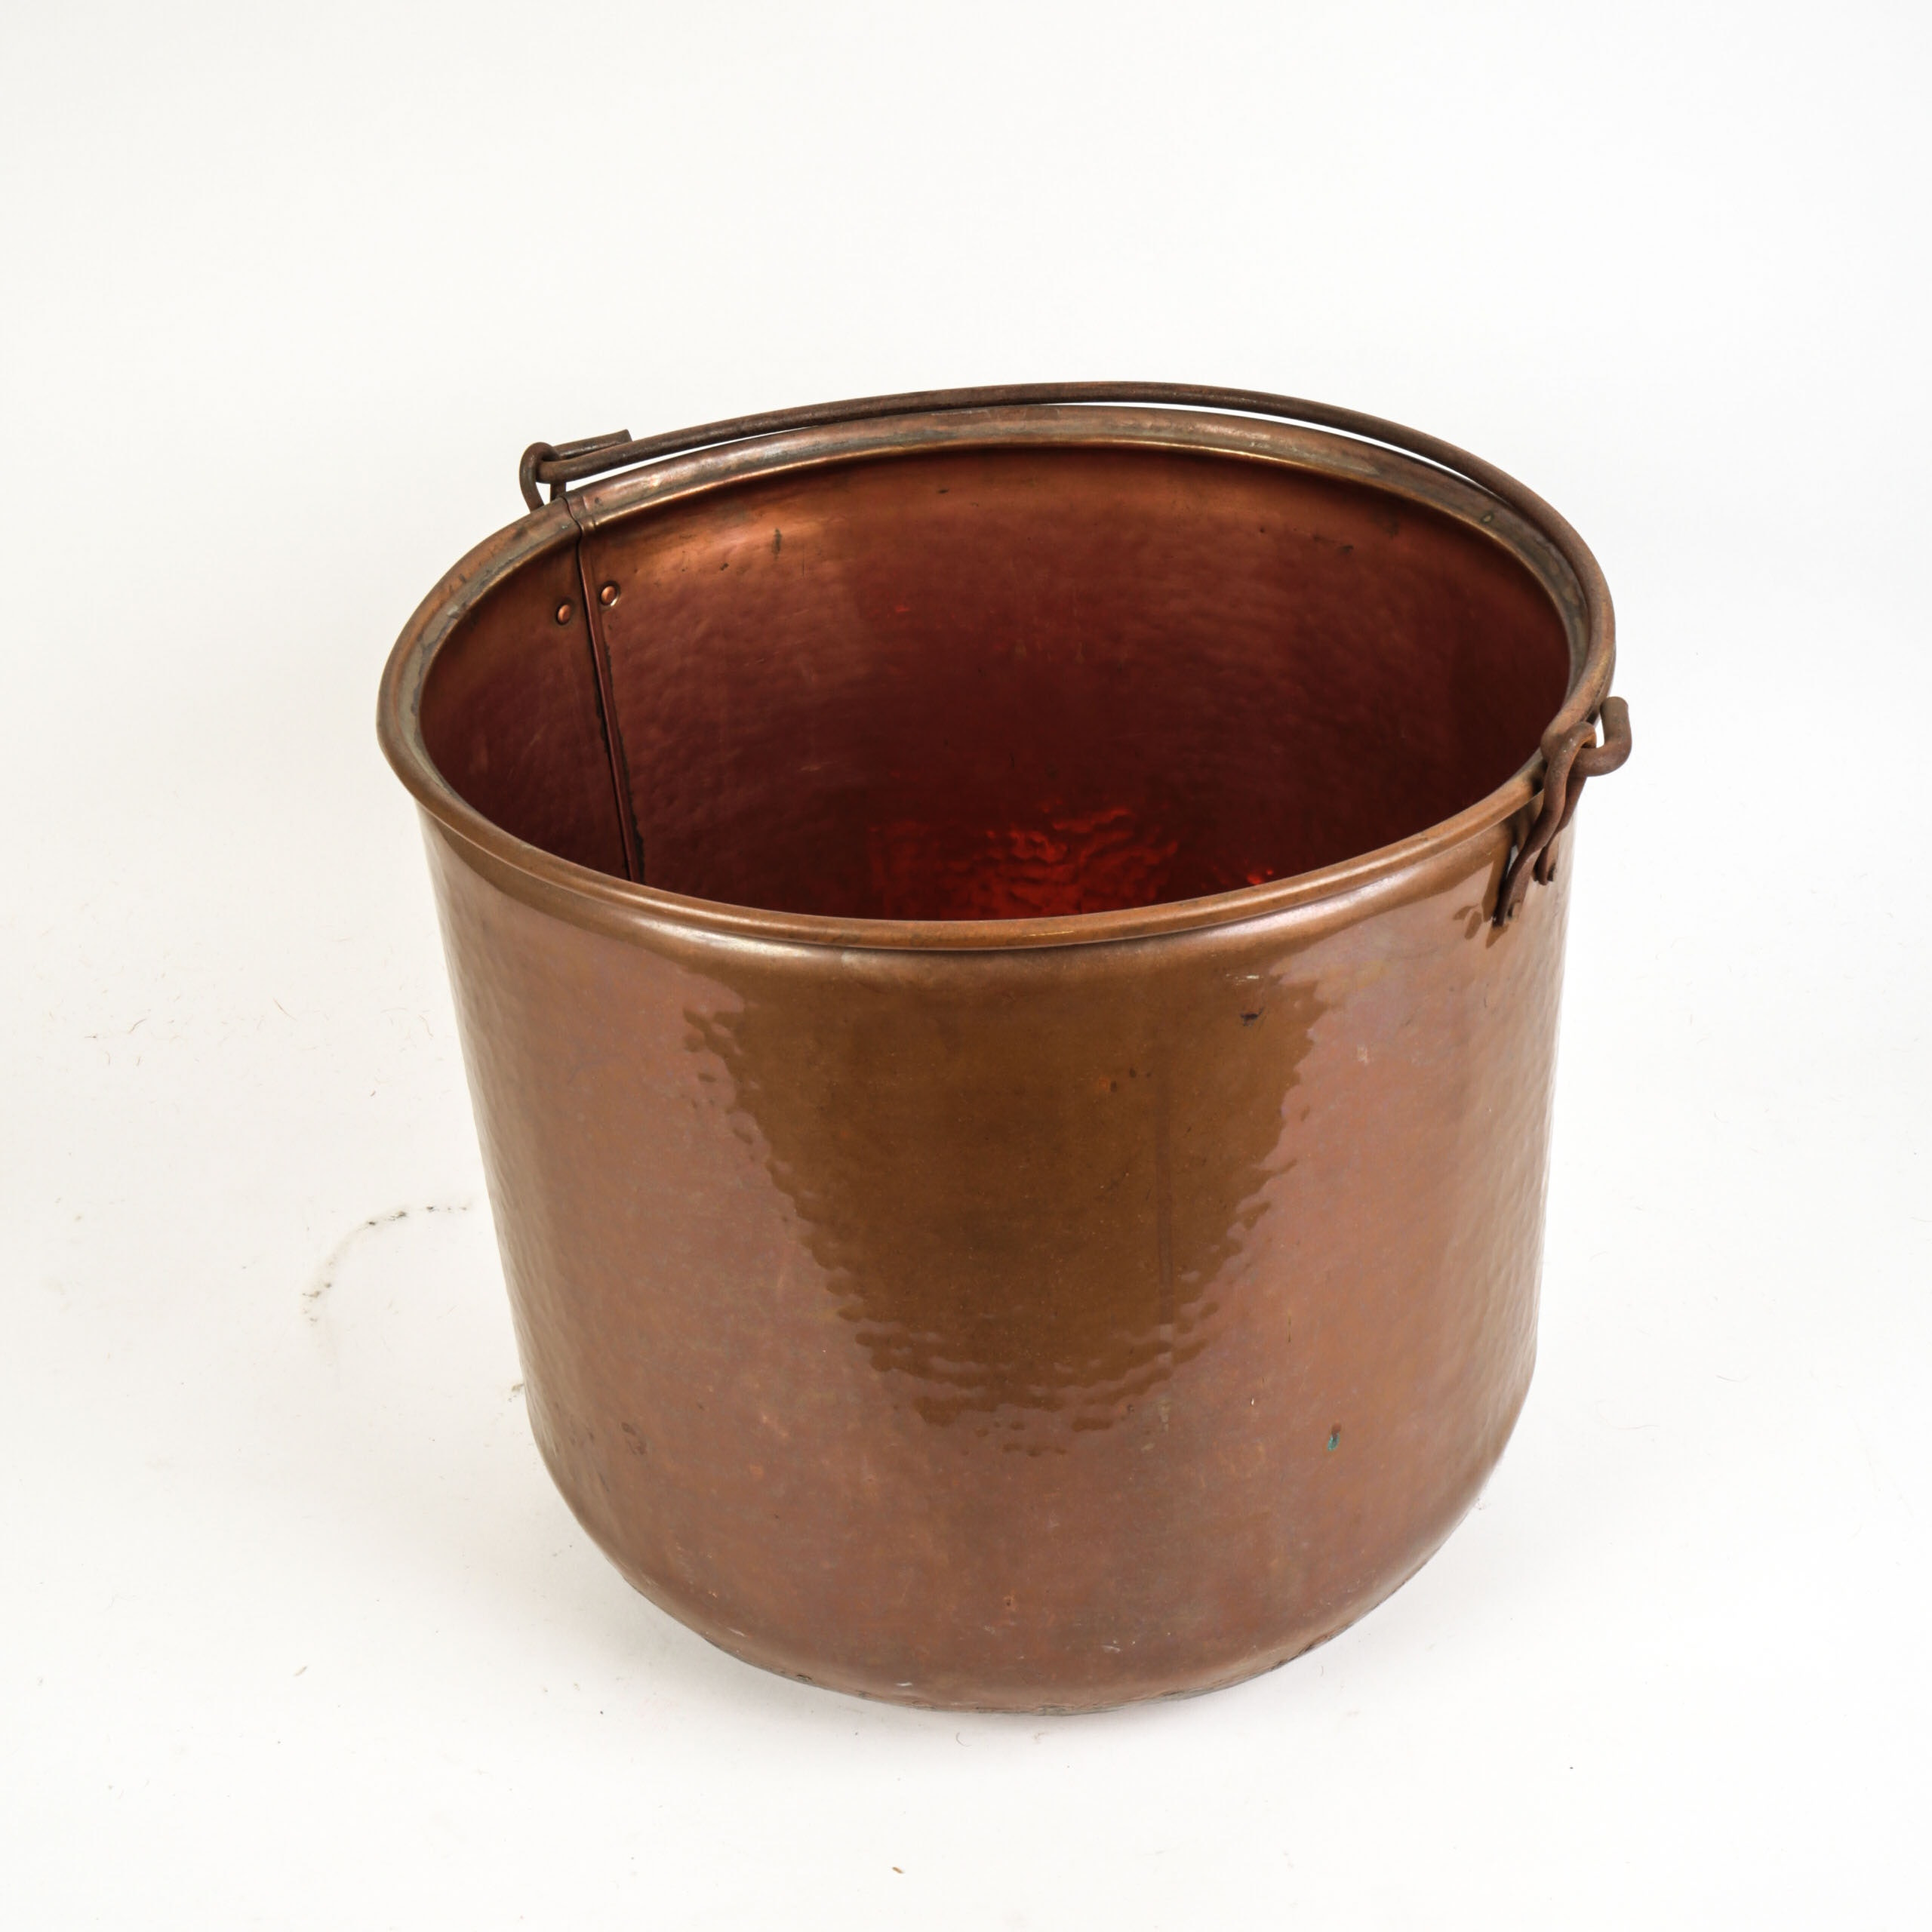 Copper Cooking Pot